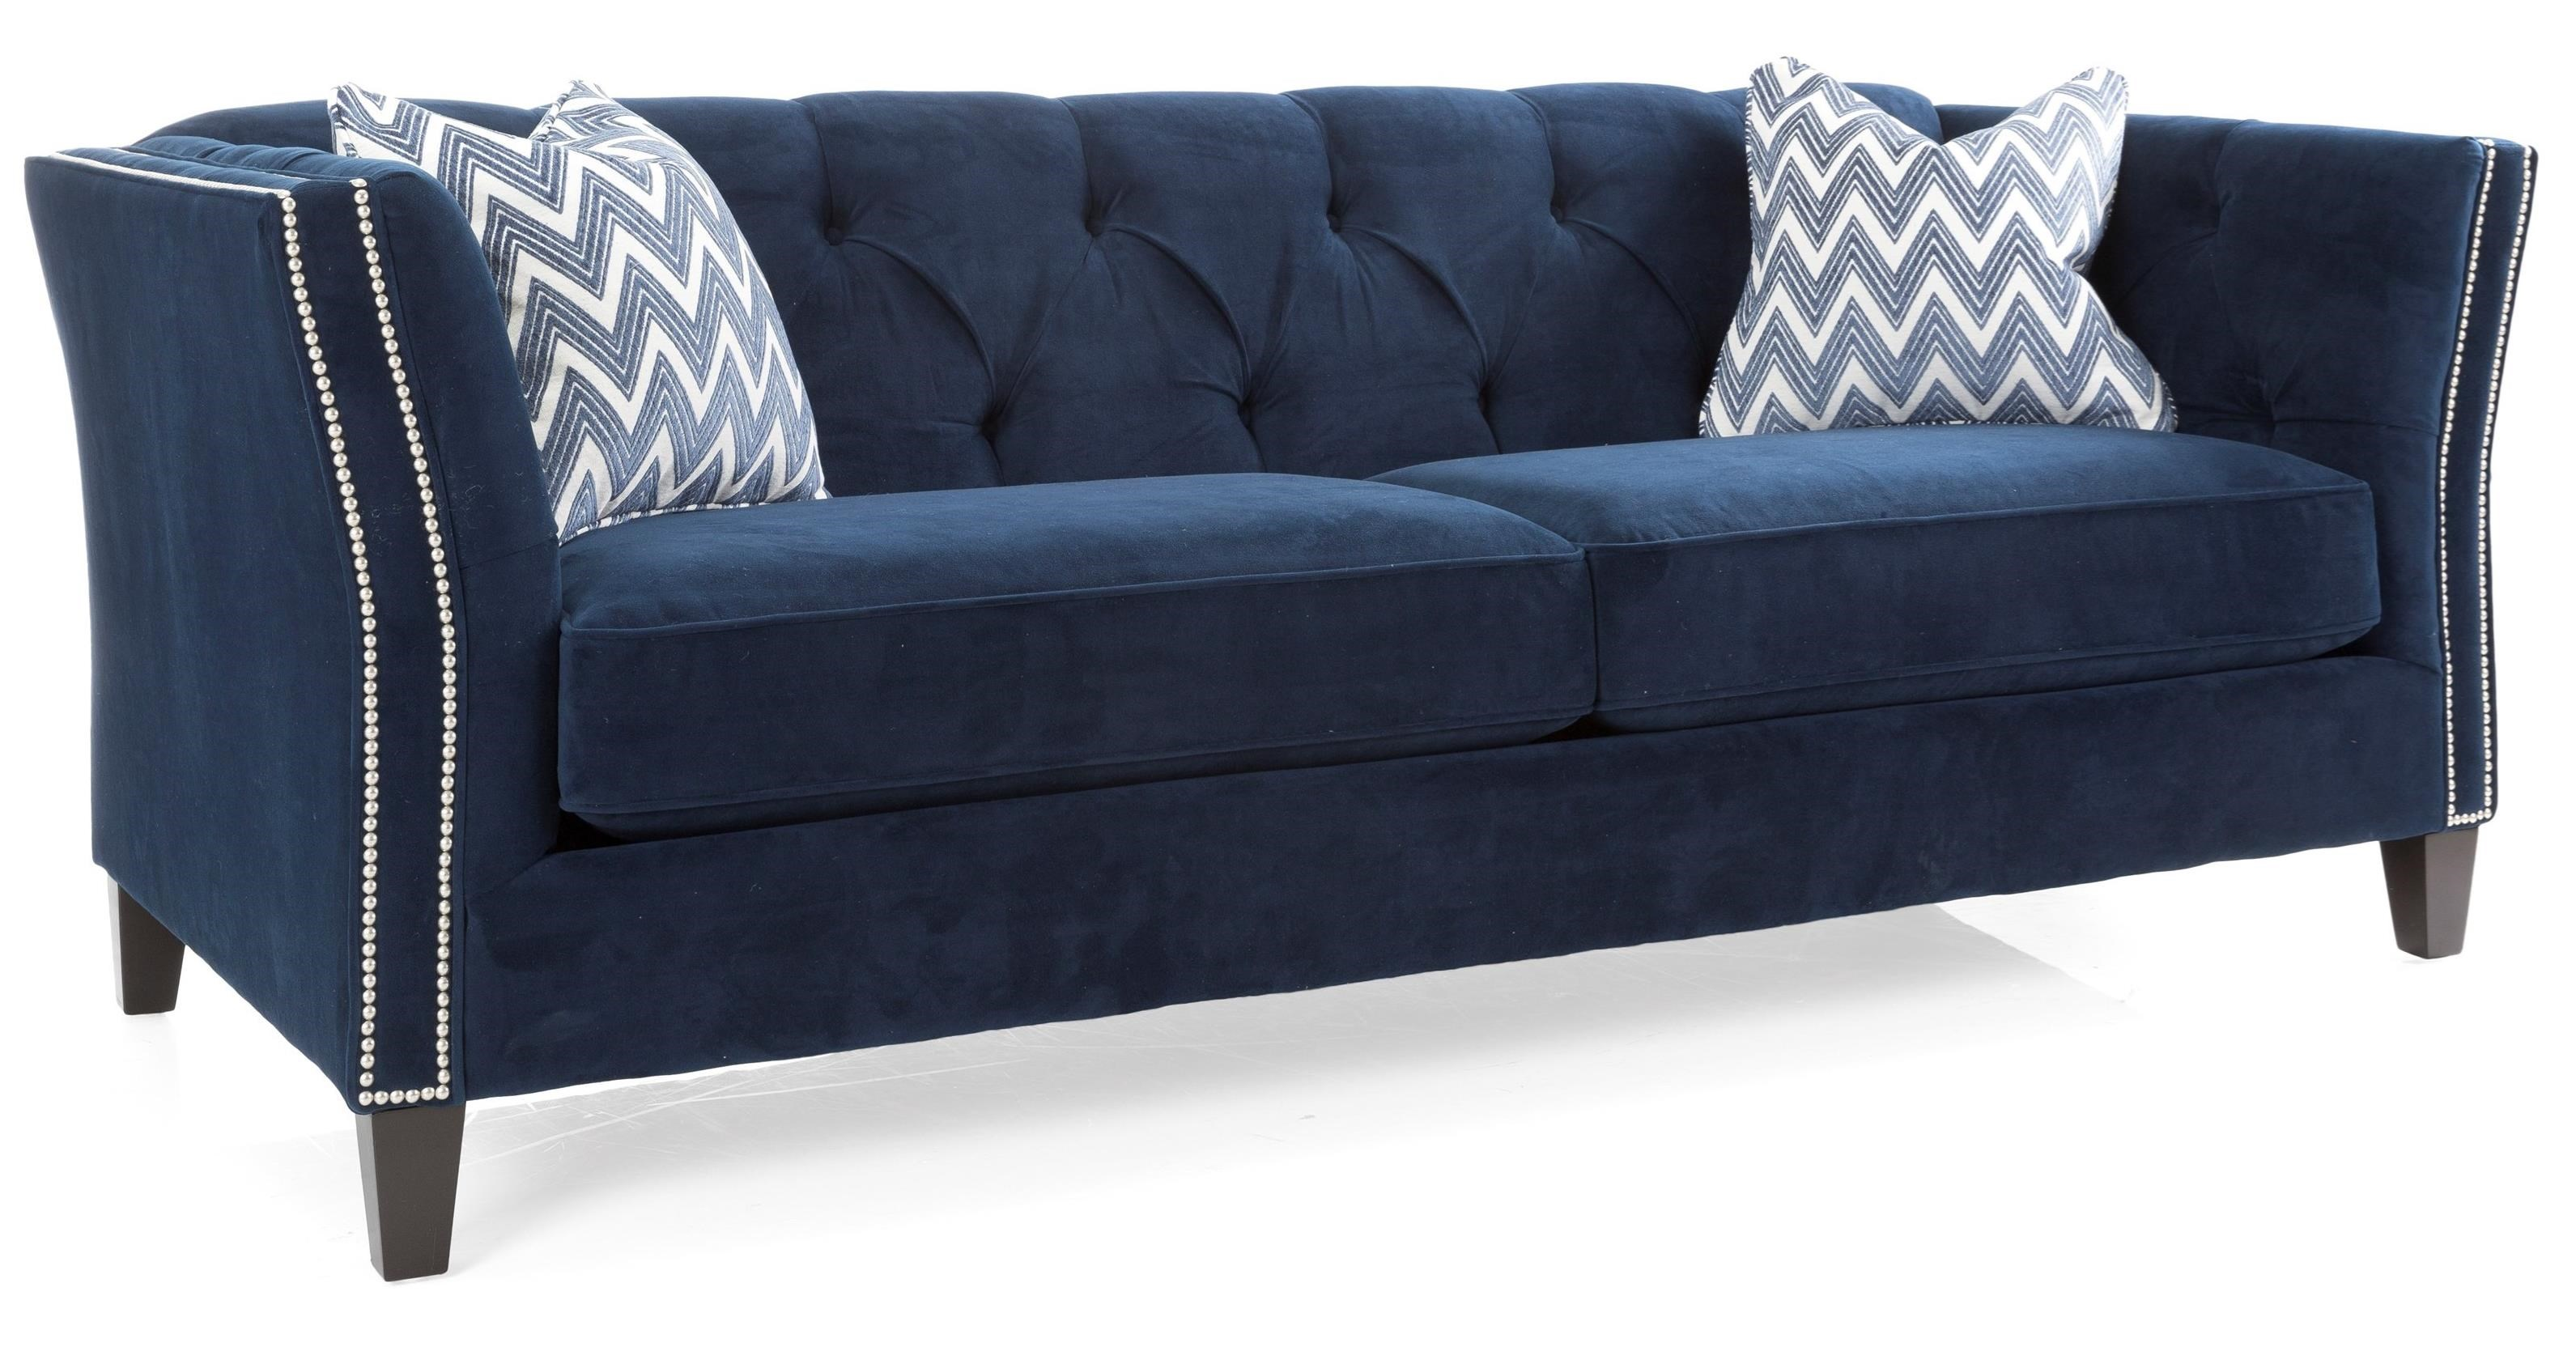 2555 Sofa by Taelor Designs at Bennett's Furniture and Mattresses